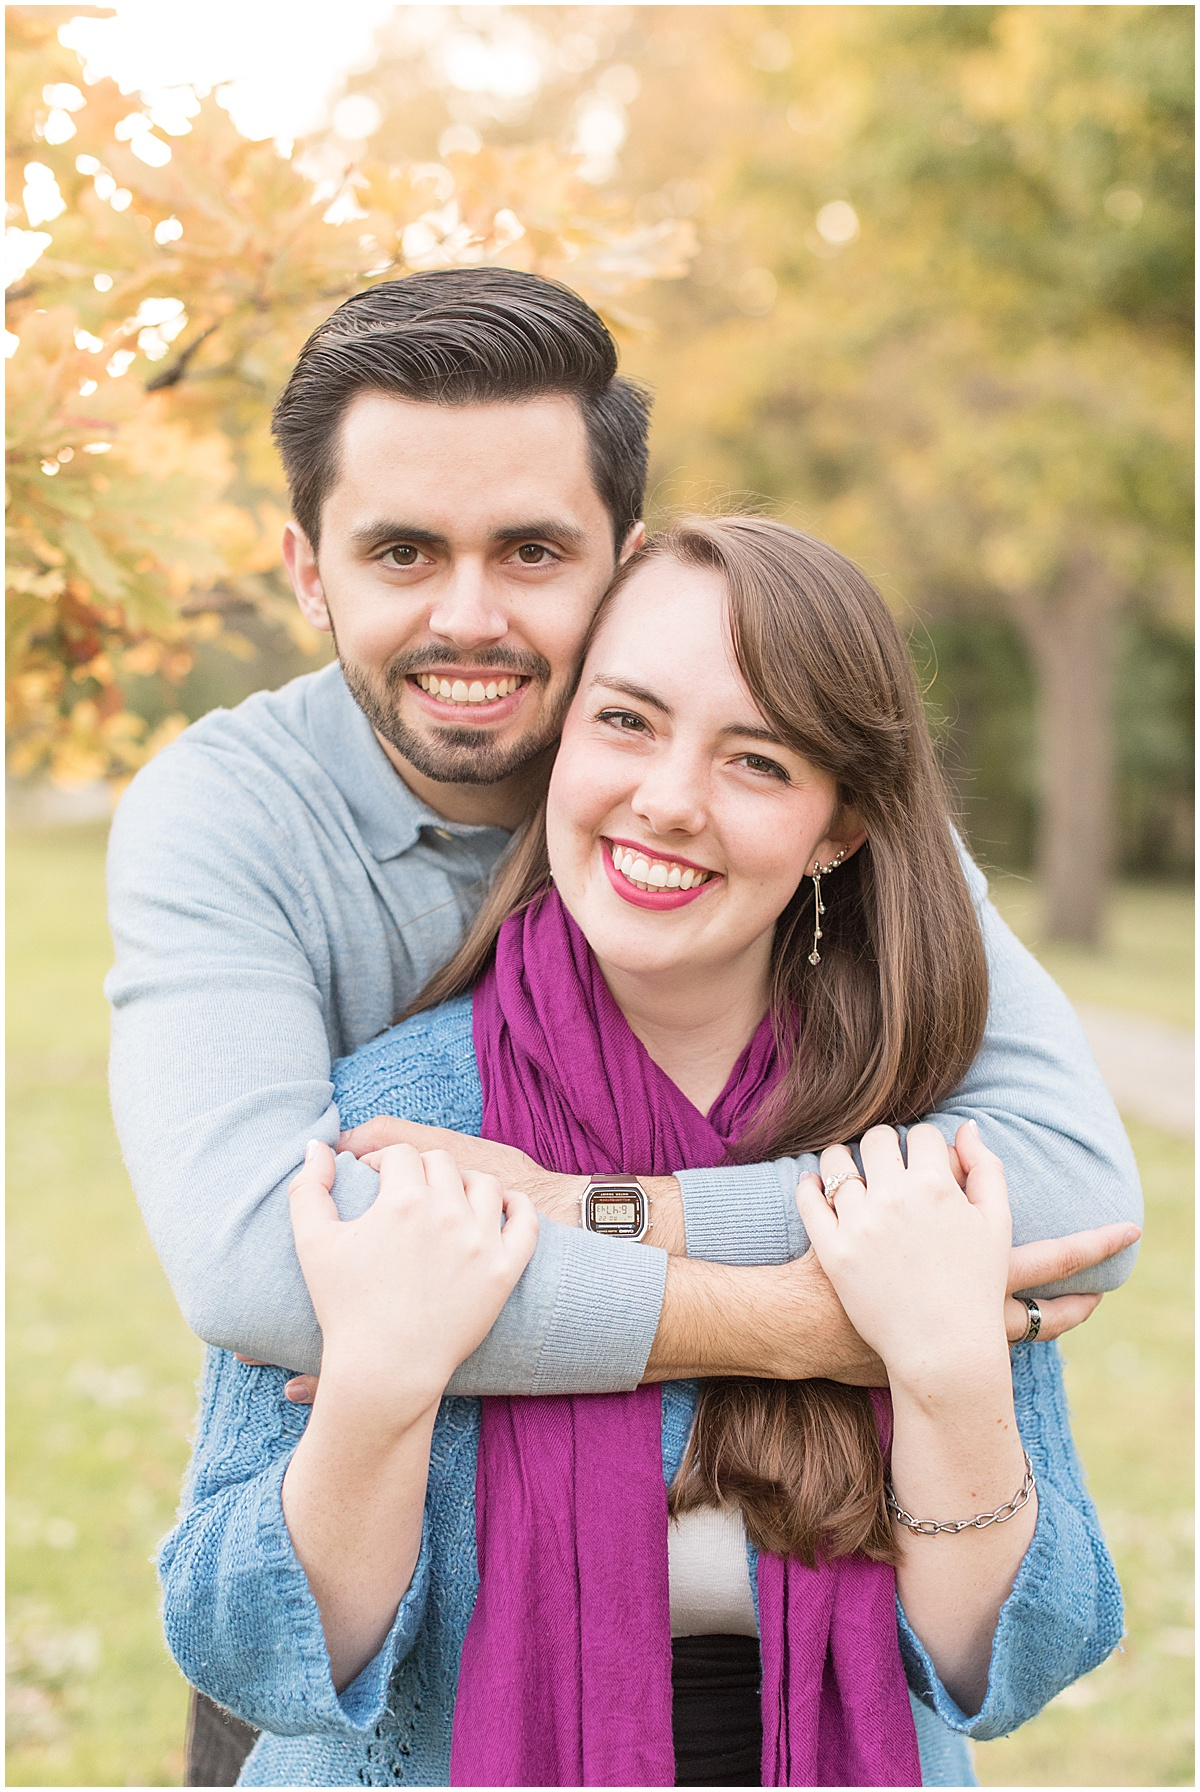 Nick Ballester and Madeline Pingel Engagement Session in Downtown Lafayette Indiana1.jpg